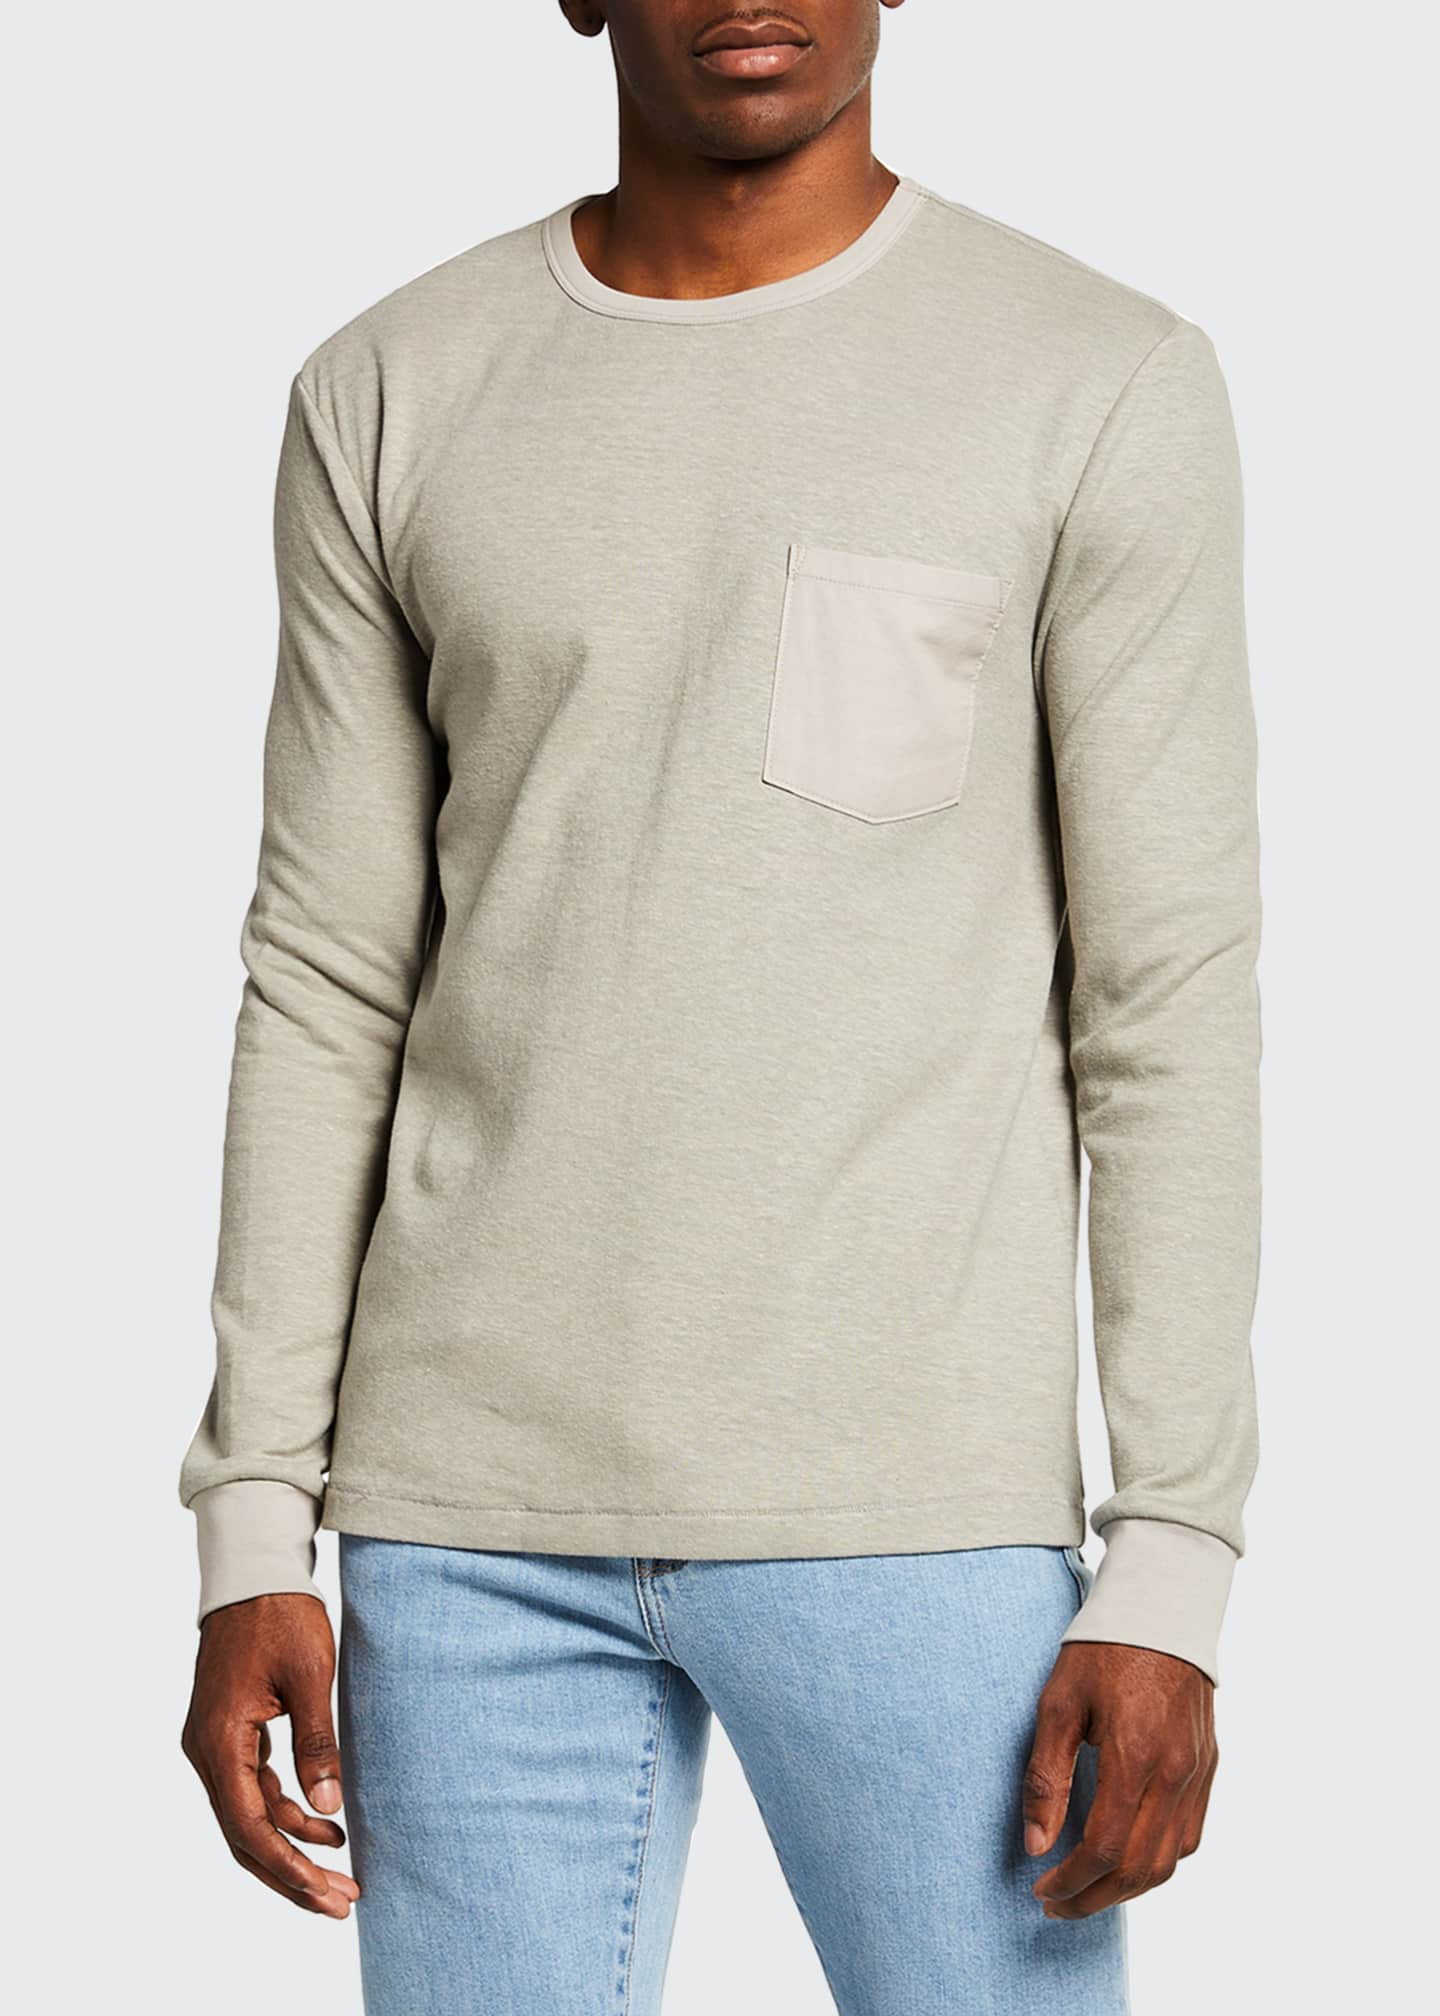 Image 1 of 2: Men's Long-Sleeve Crew Tee w/ Pocket